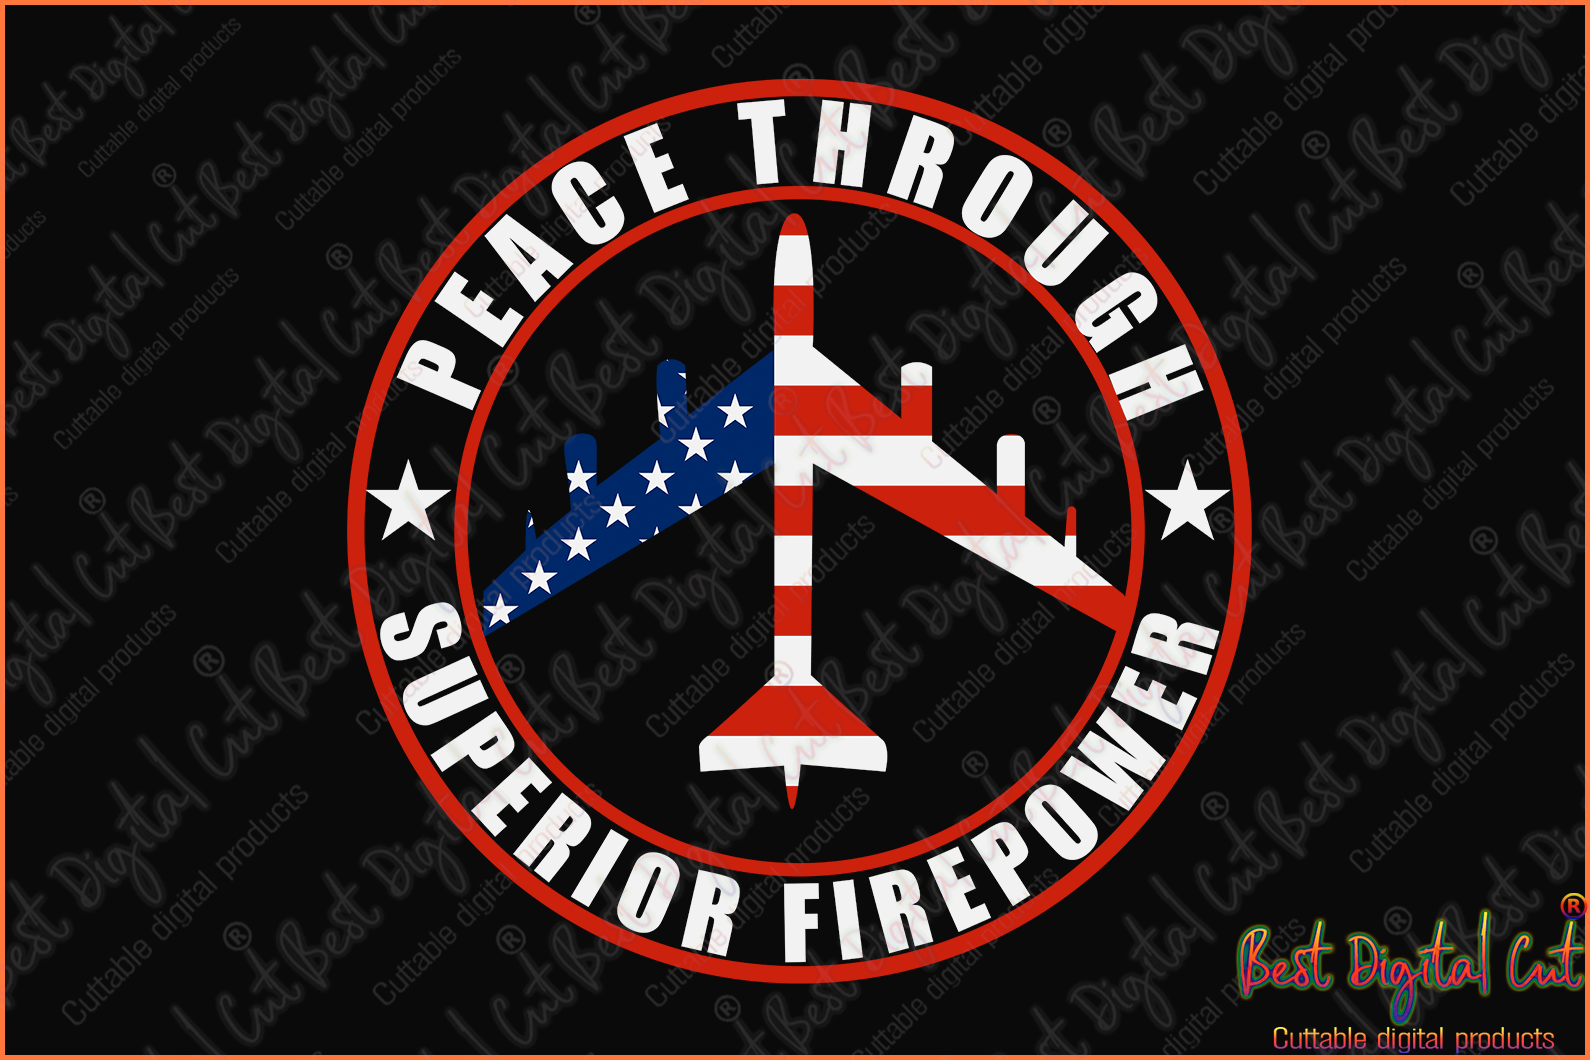 Peace through superior firepower svg,embroidery svg,American flag svg,Happy 4th of July 2020 svg,freedom day svg,jubilee day svg,American holiday,1776 July 4th,emancipation day svg,independence day svg,black African hands,black lives matter shirt